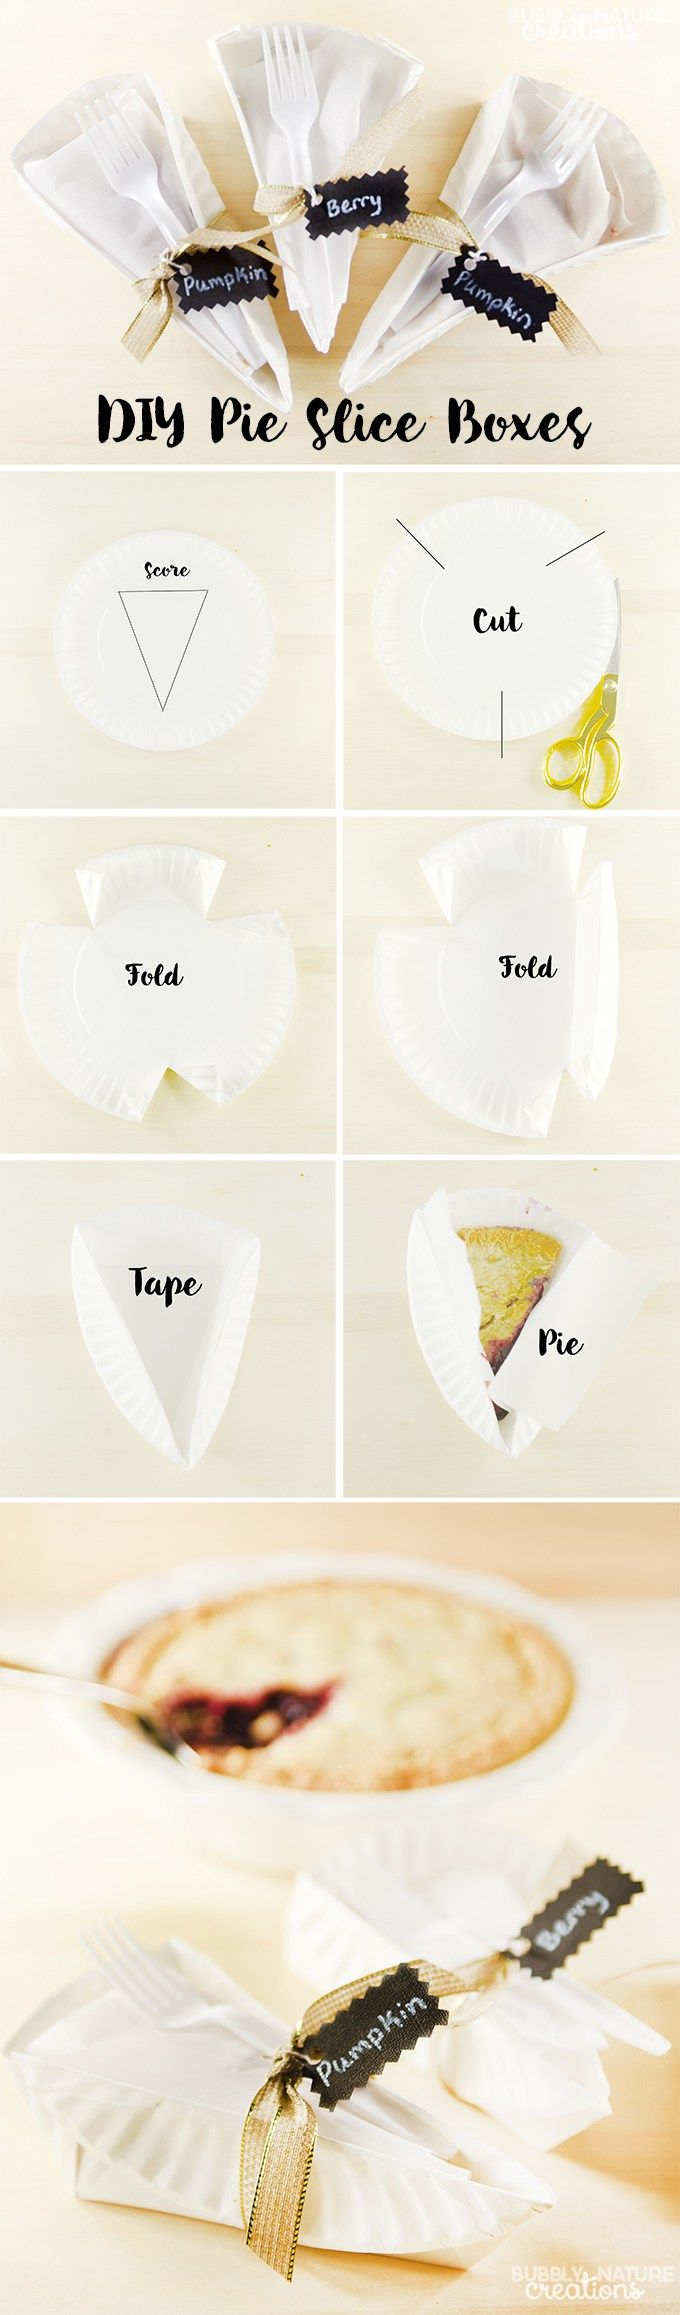 DIY Pie Slice Boxes! Perfect for sending home guests with a piece of pie or gifting for the holidays!